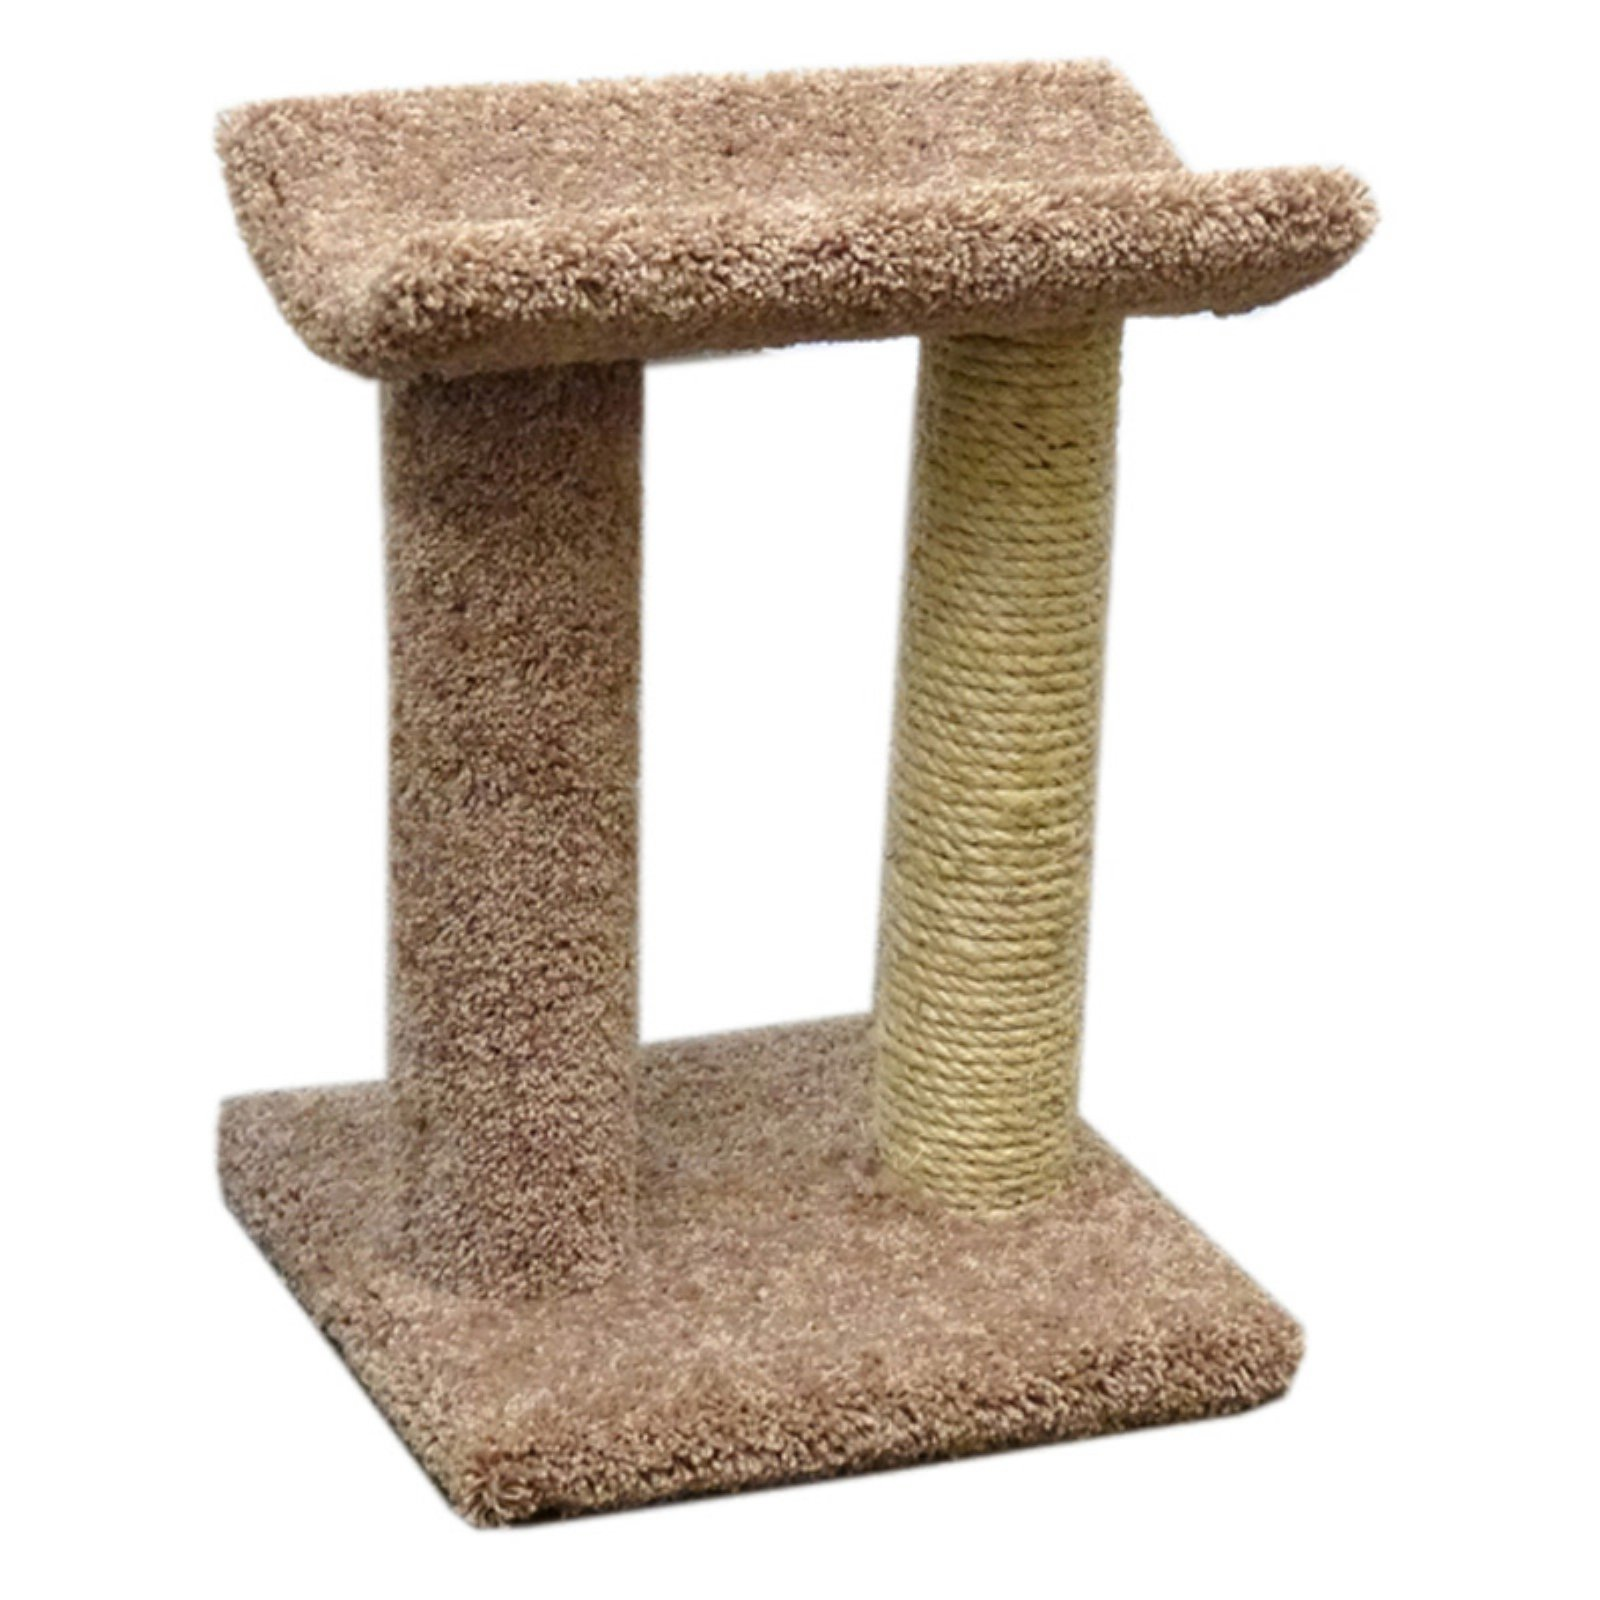 New Cat Condos Premier Sisal Rope Scratch Post